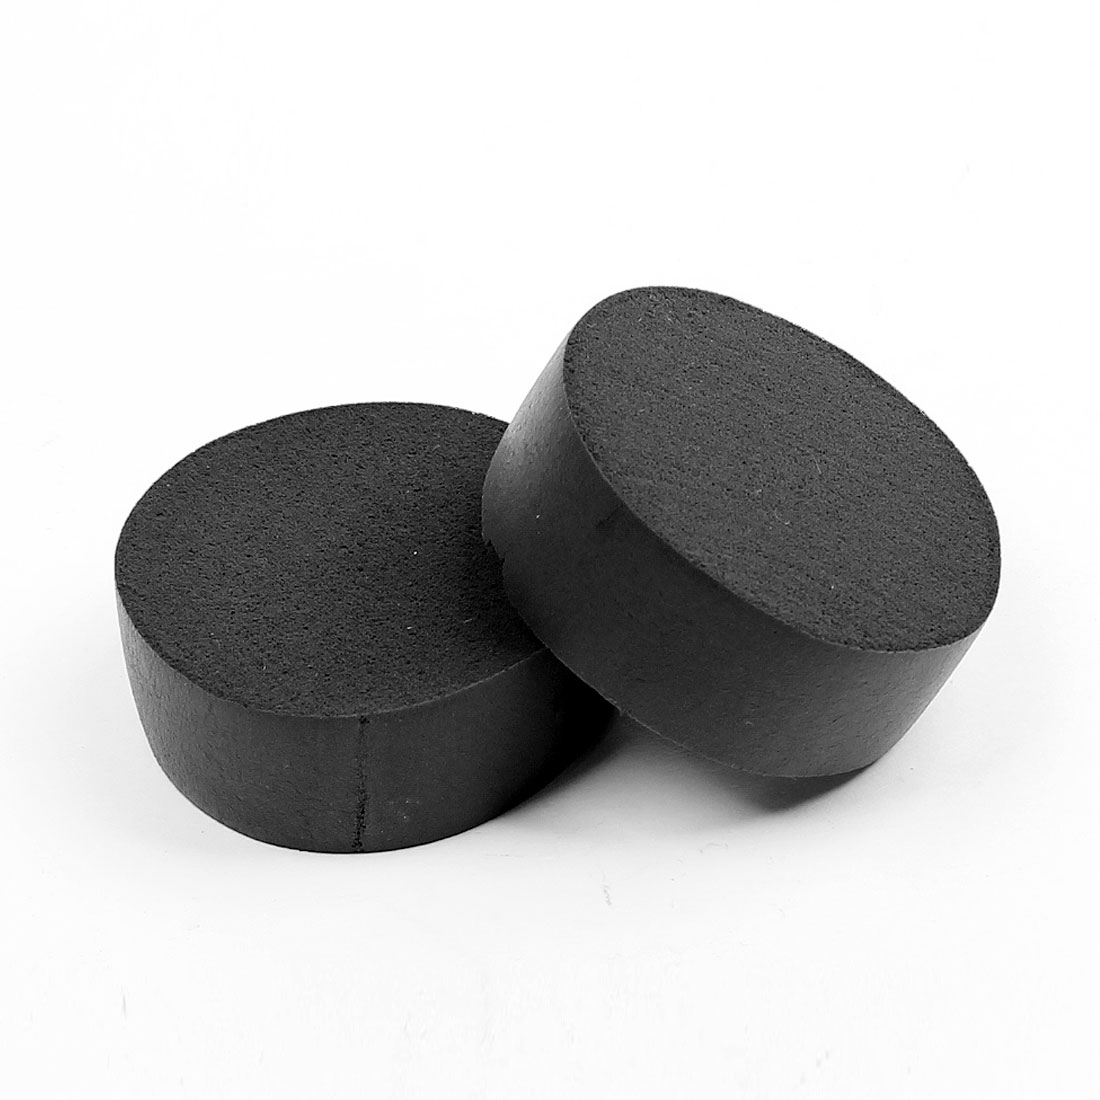 2 Pcs Black Round Shape Cosmetic Powder Puff for Lady